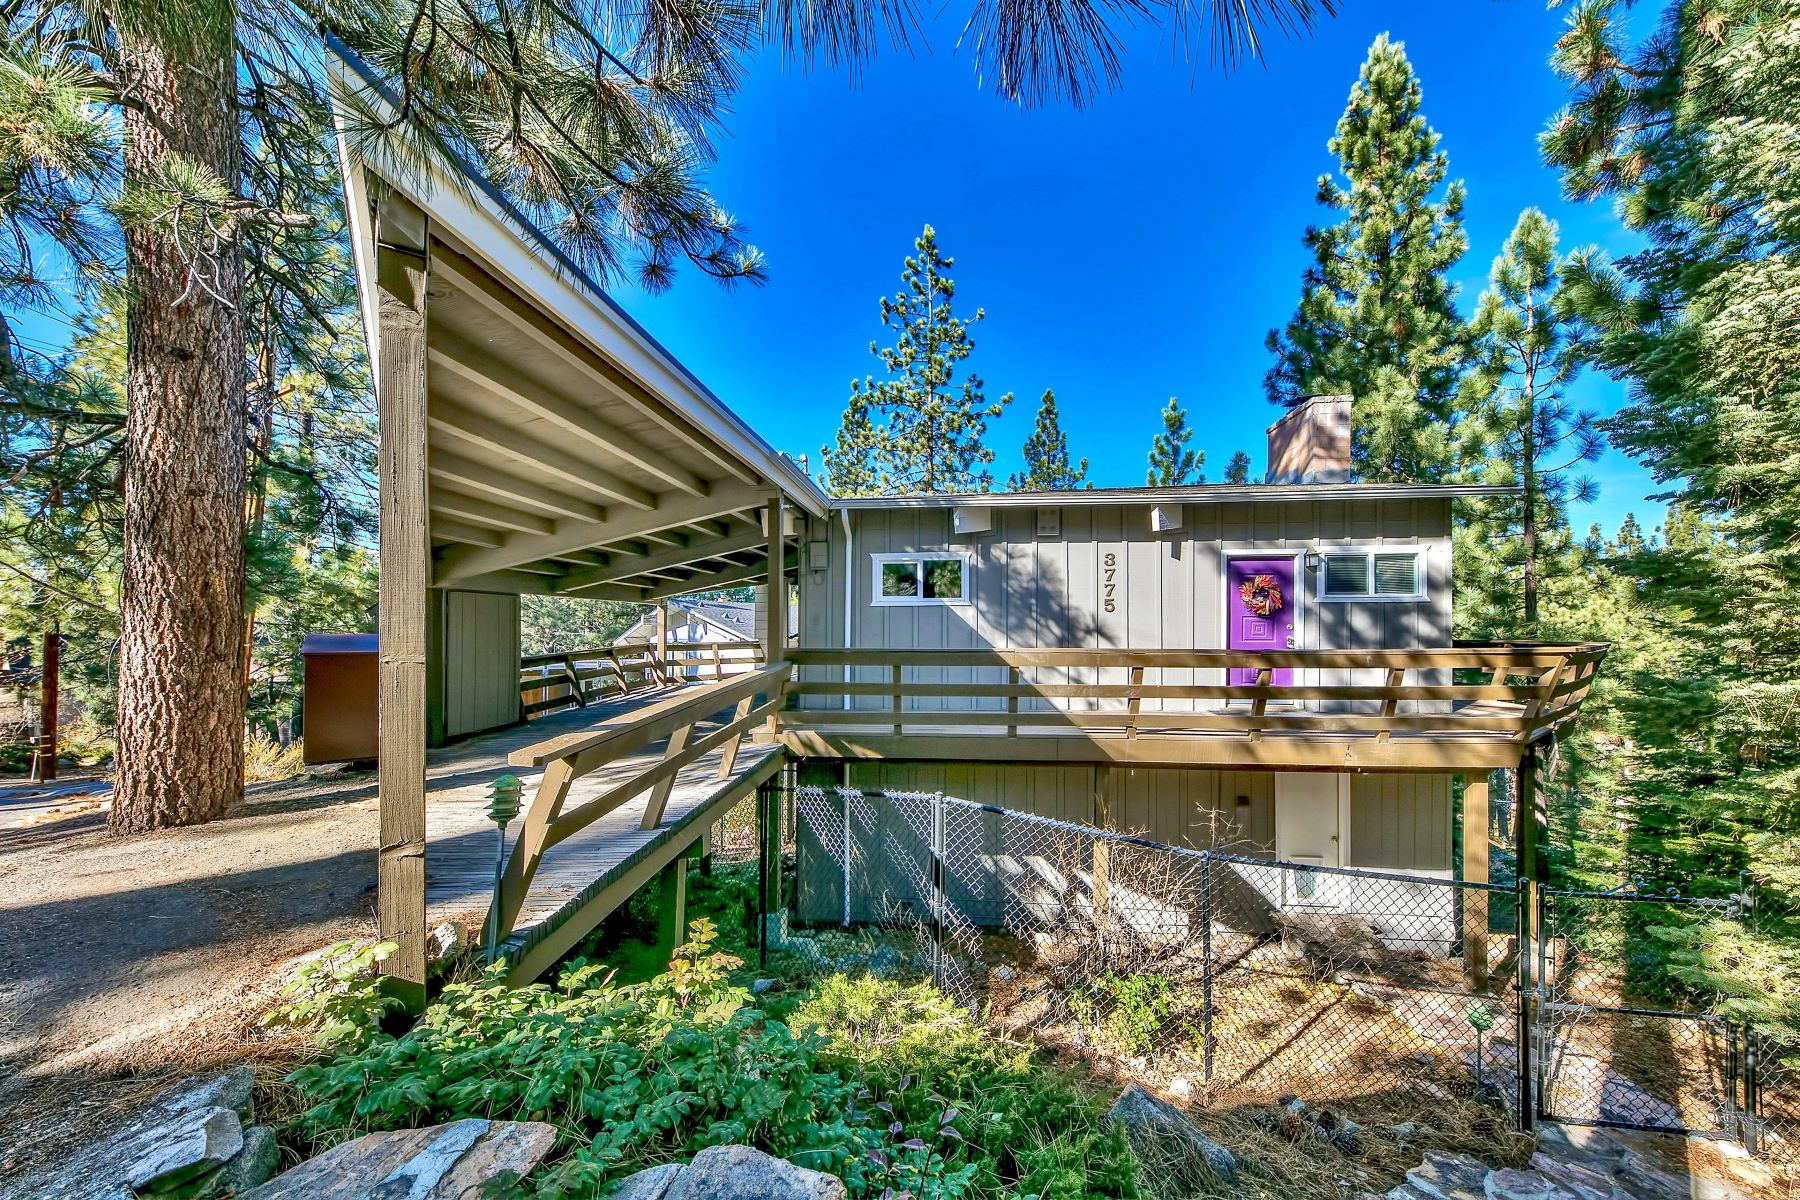 Single Family Homes for Active at 3775 Overlook Court, South Lake Tahoe, CA 96150 3775 Overlook Court South Lake Tahoe, California 96150 United States